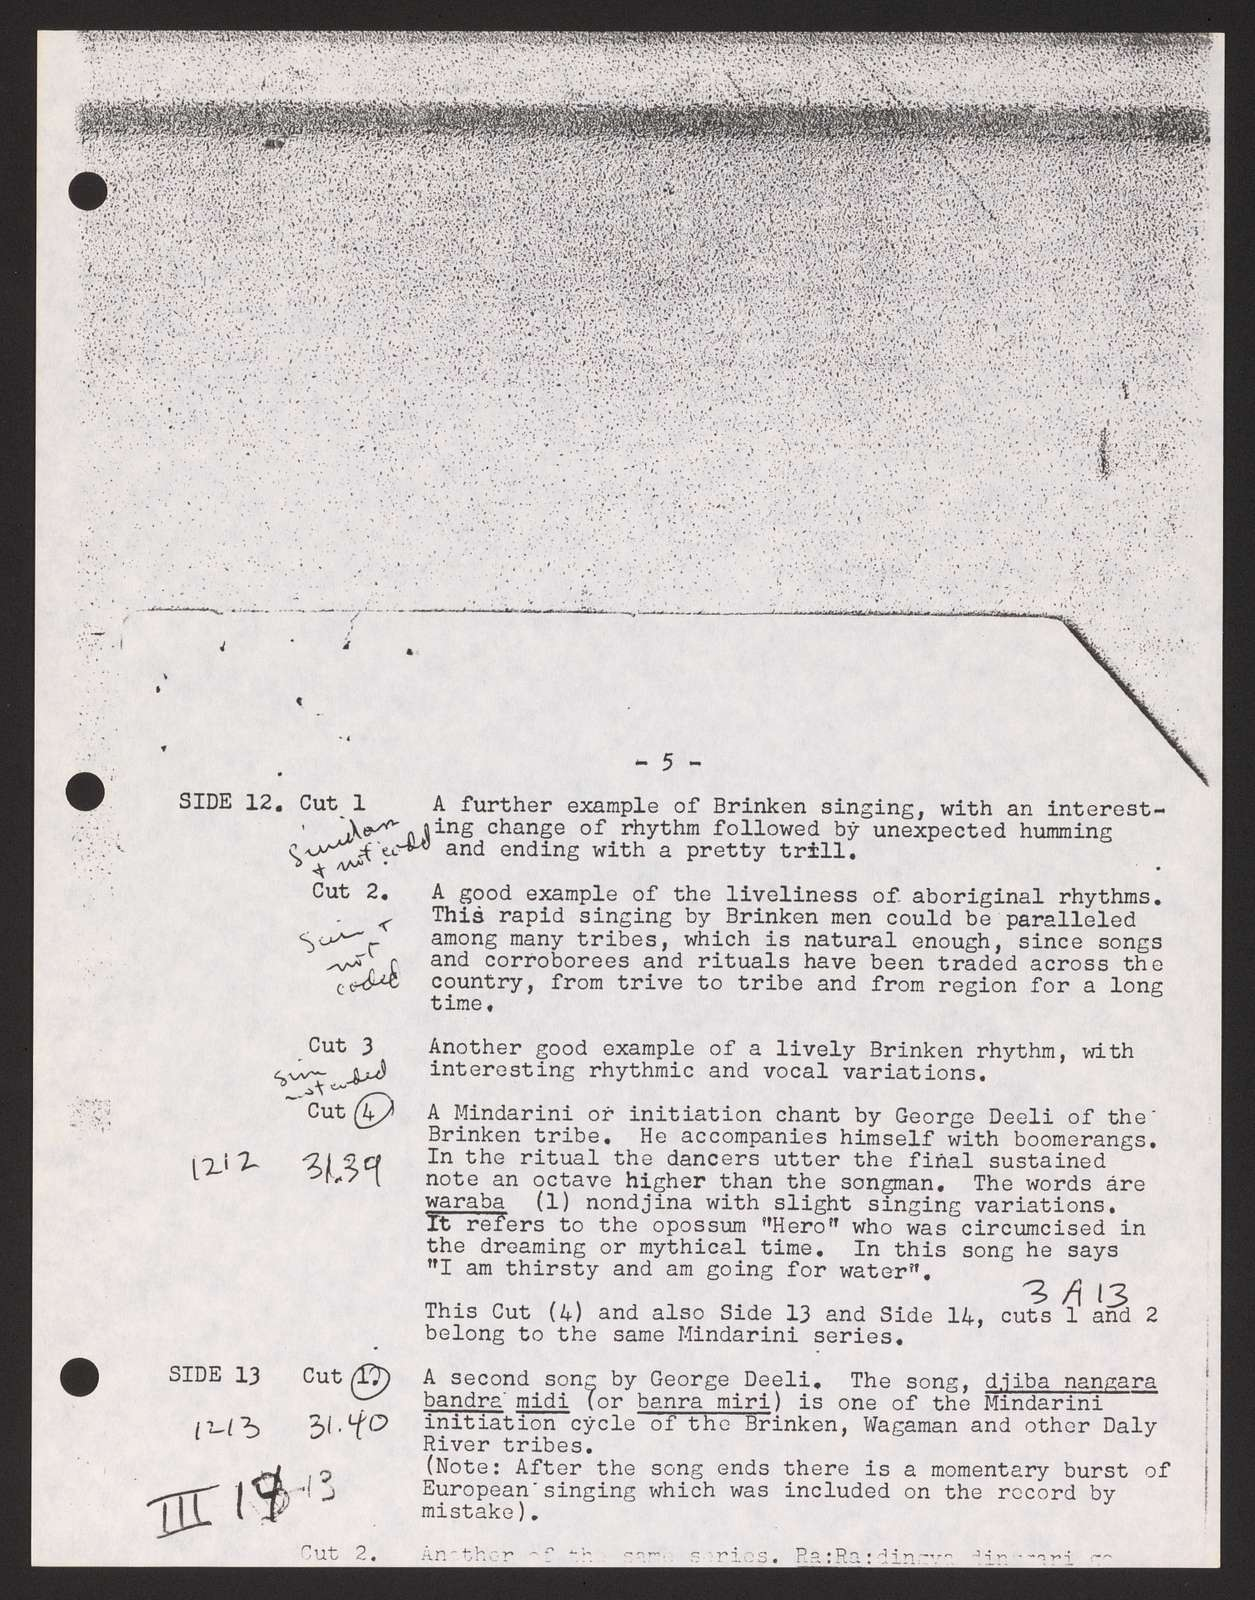 Alan Lomax Collection, Manuscripts, Performance style, Global Jukebox, WS24.37- (12)